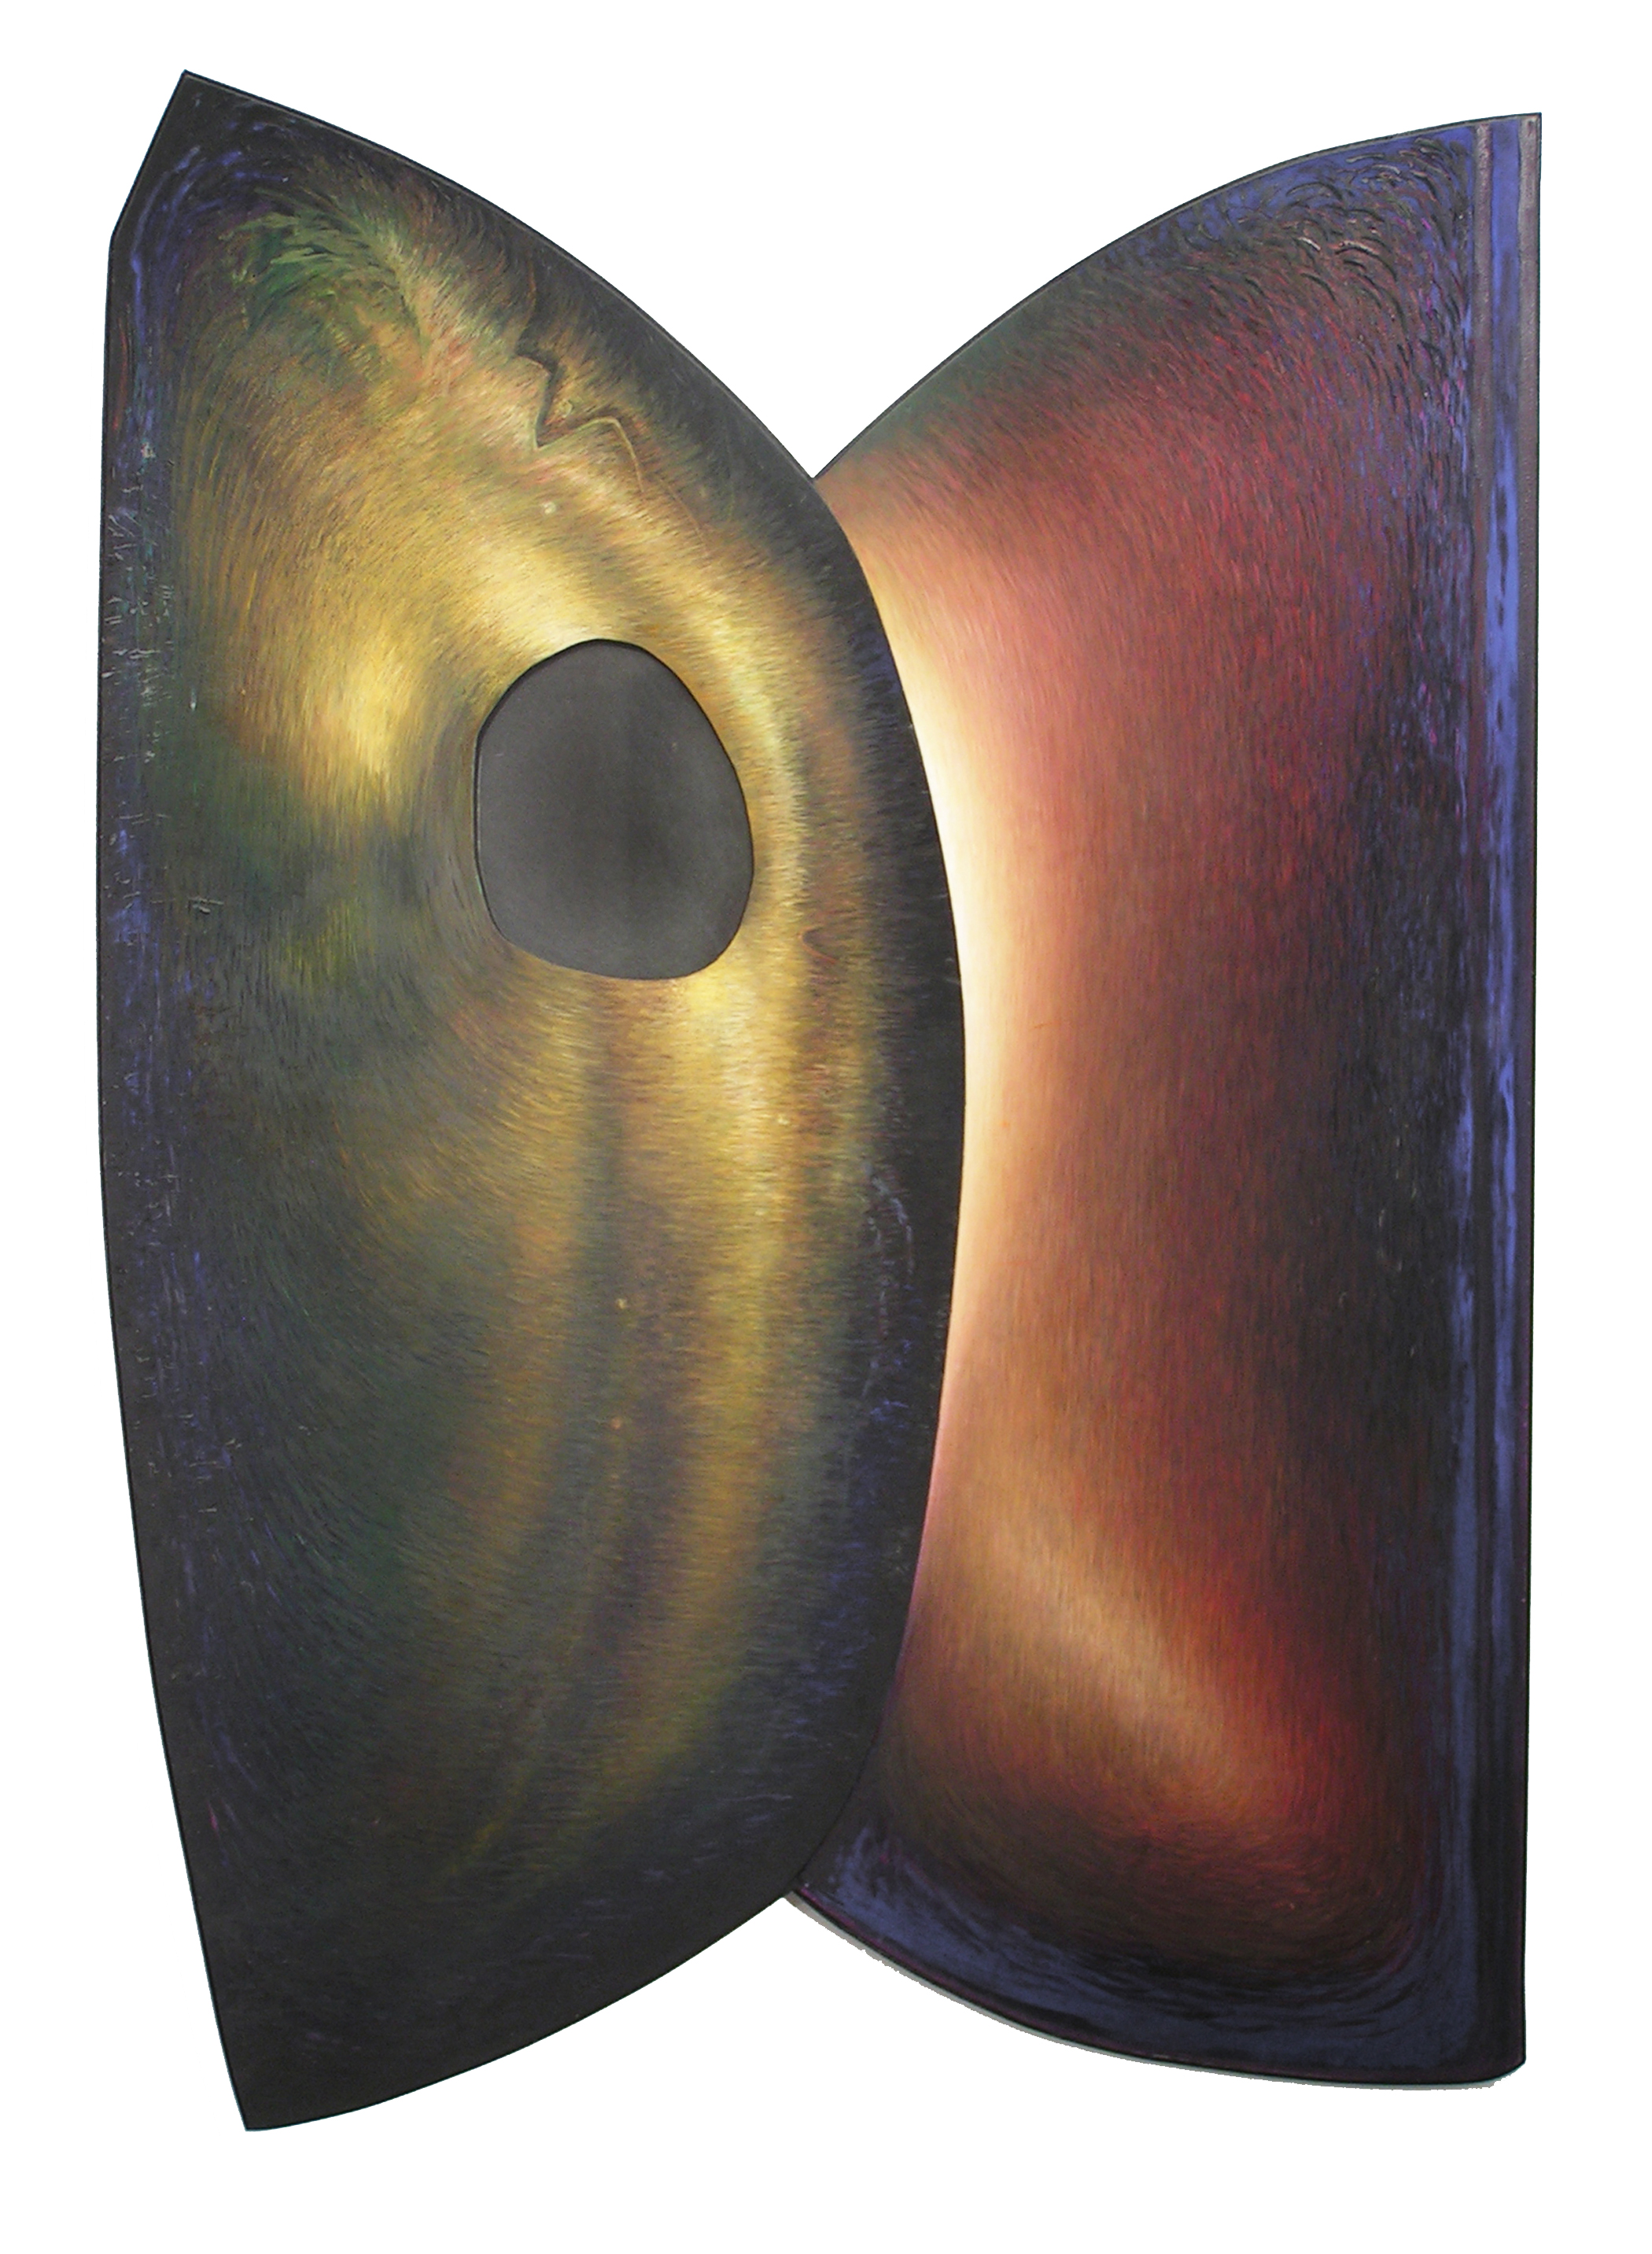 Thee,  1995  Oil paint, pumice, oil pastel, poplar, mirror, musilim 68 x 50 x 3 inches